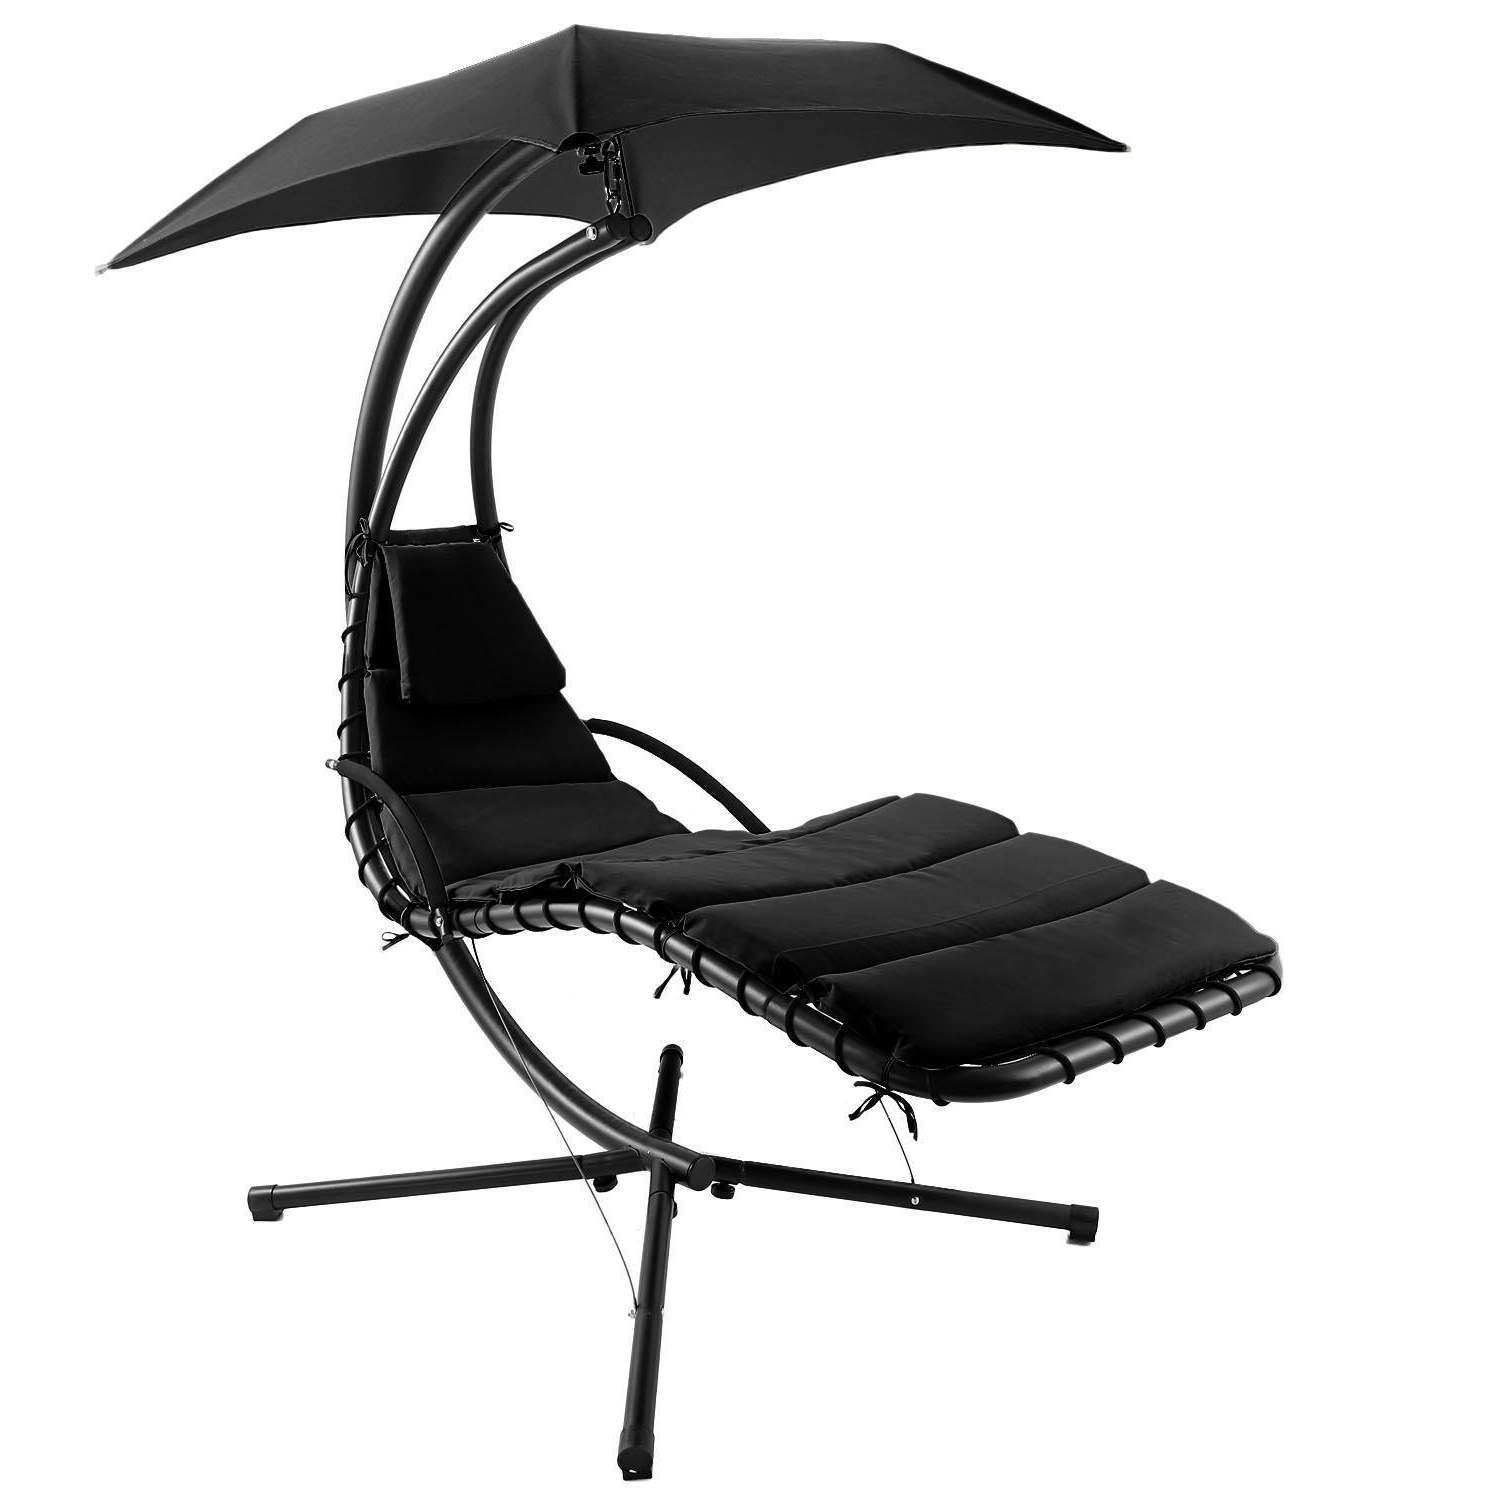 Garden Leisure Outdoor Hammock Patio Canopy Rocking Chairs With Well Liked Hindom Hanging Chaise Lounger Chair Arc Stand/air Porch Patio Swing Hammock Chair With Canopy For Yard Garden Camping Outdoor Leisure ,black (us (View 11 of 30)